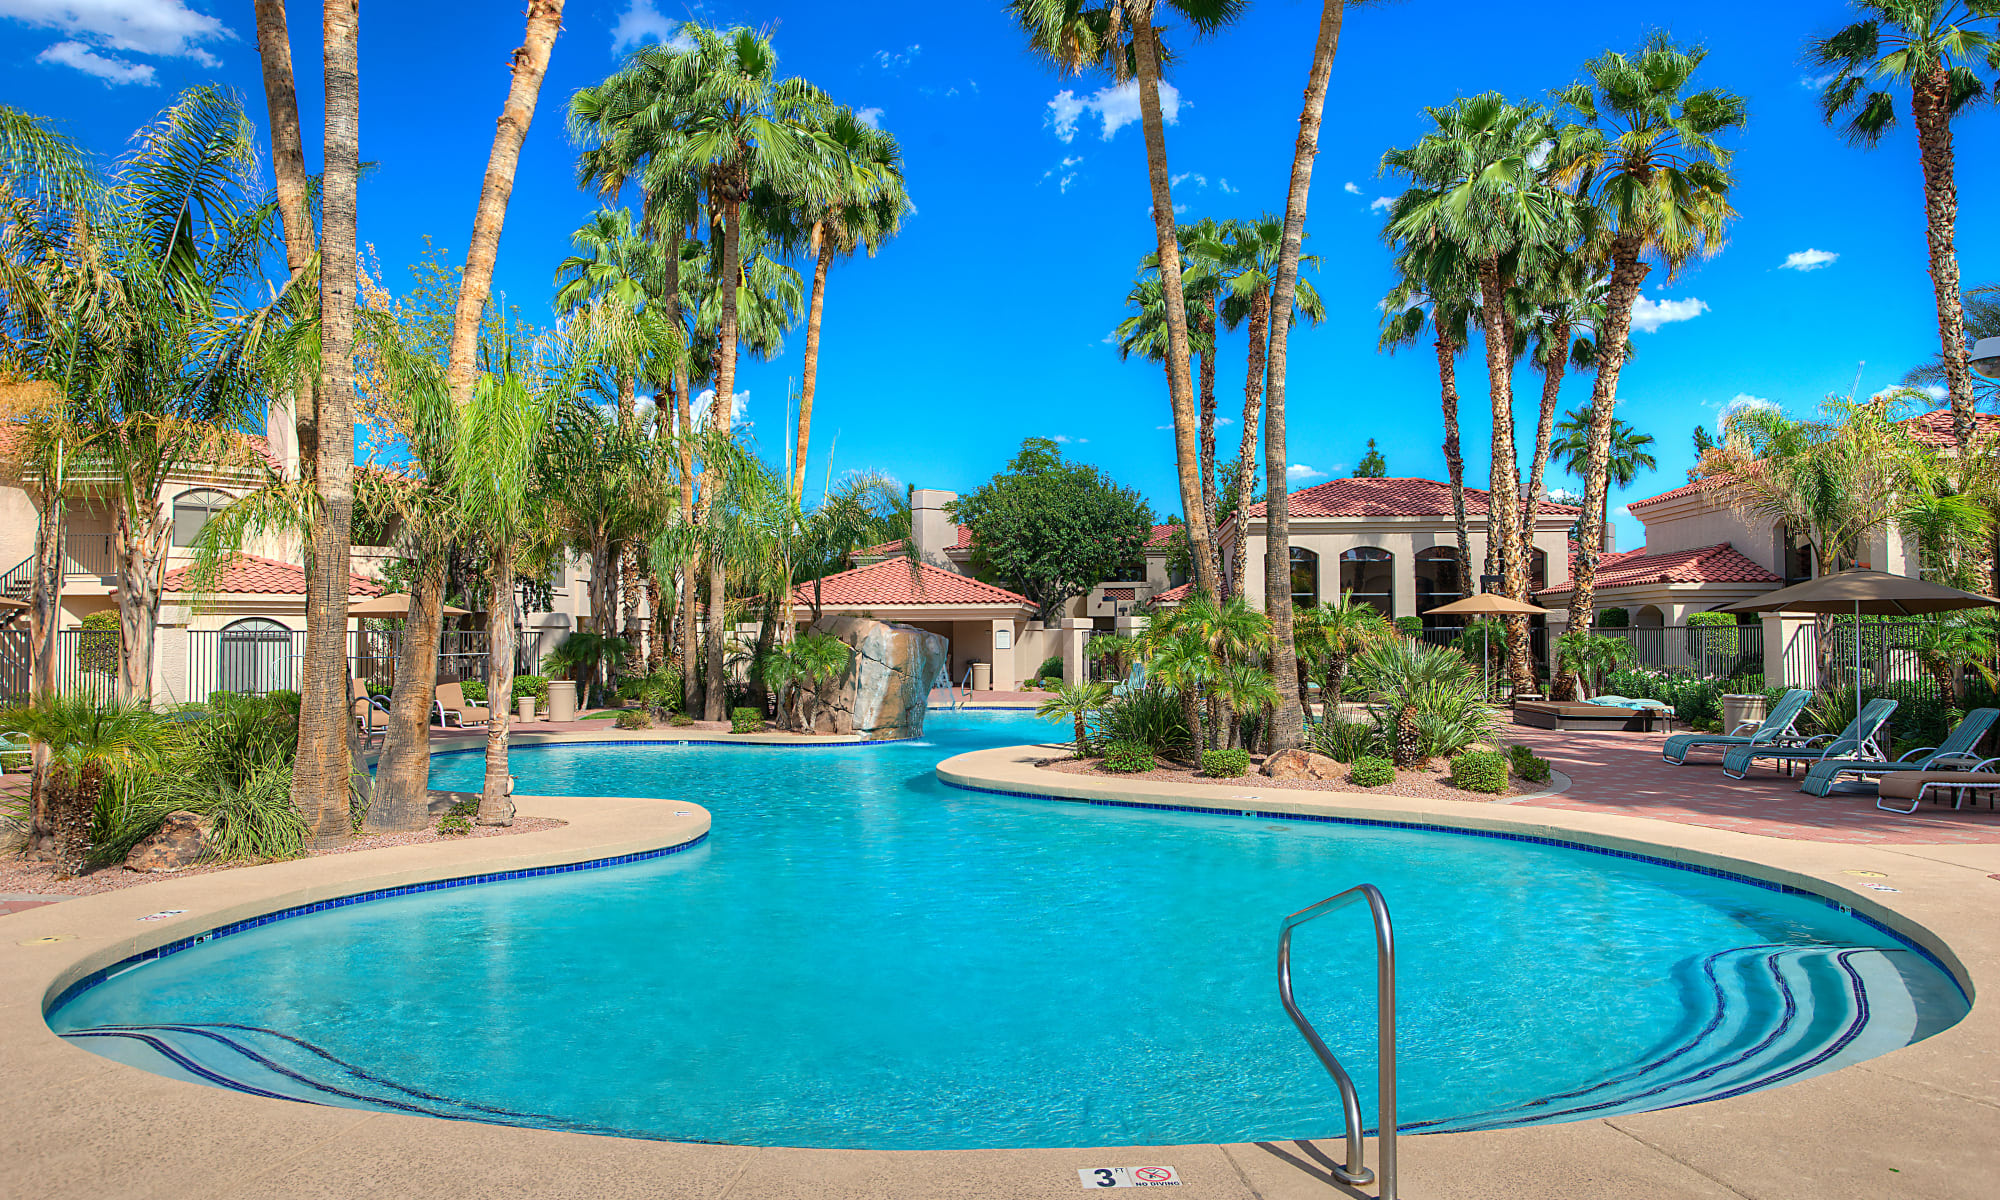 Apartments in Tempe, Arizona at San Palmilla